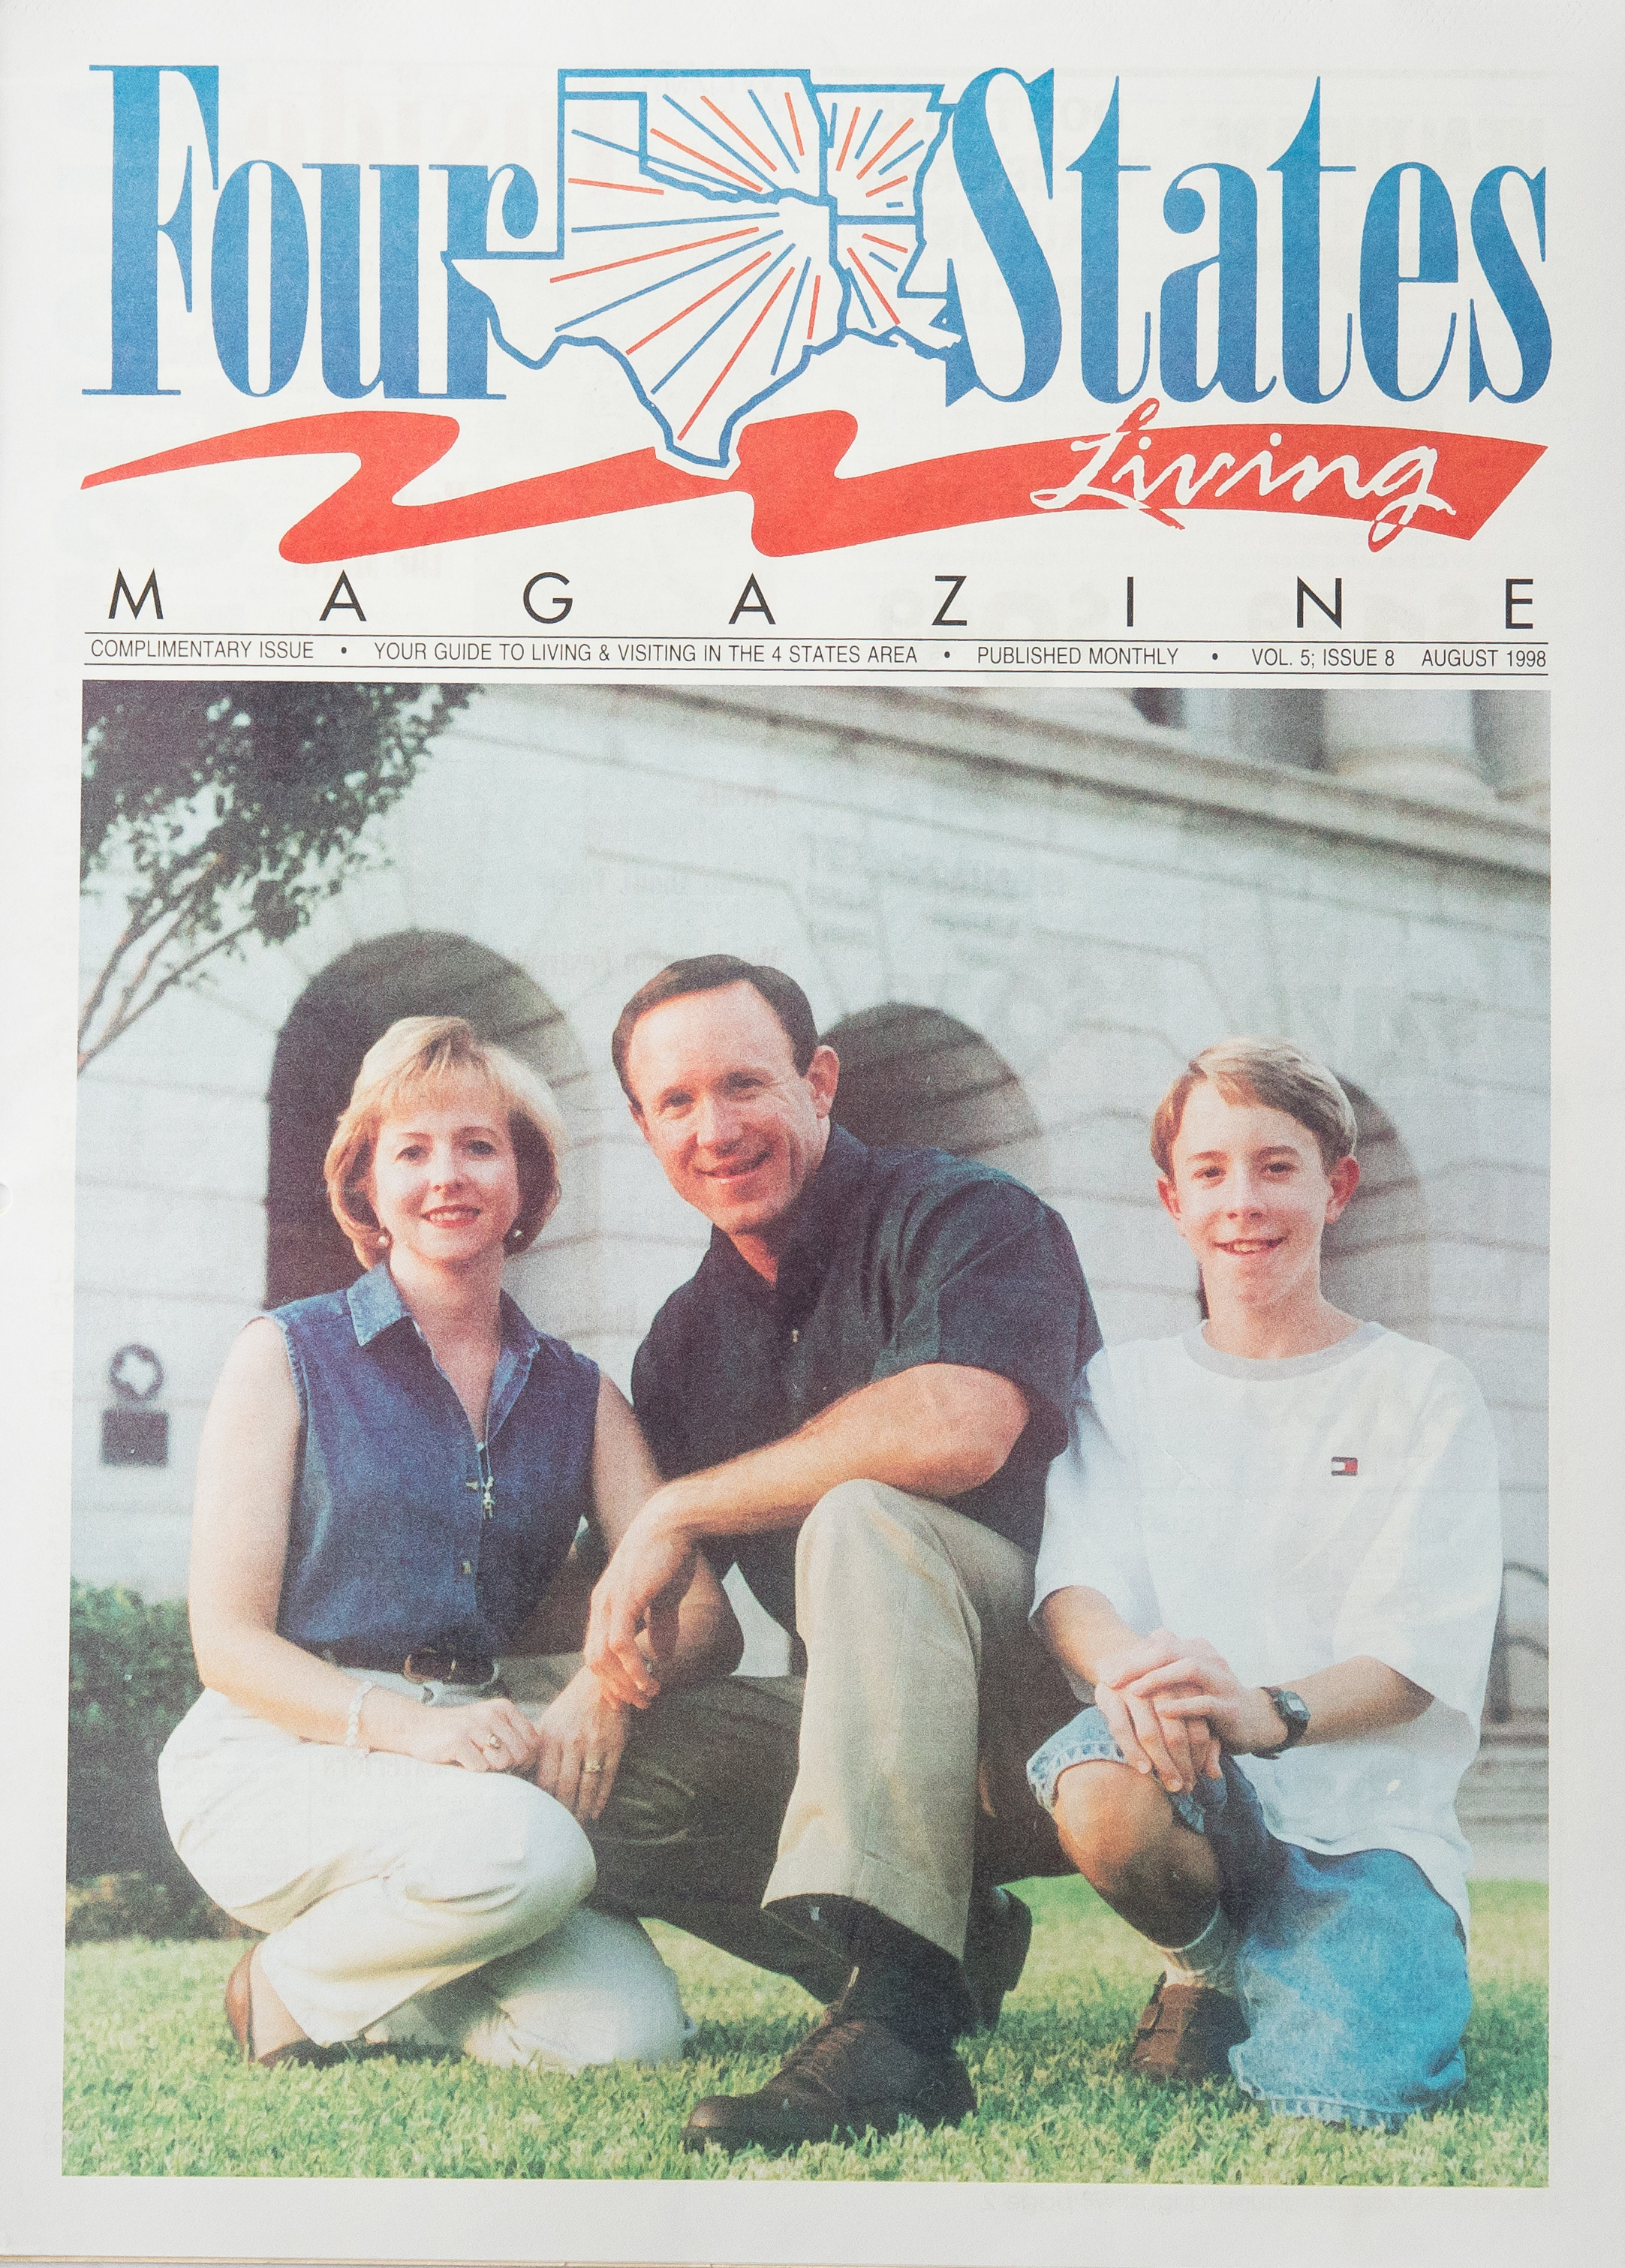 August 1998